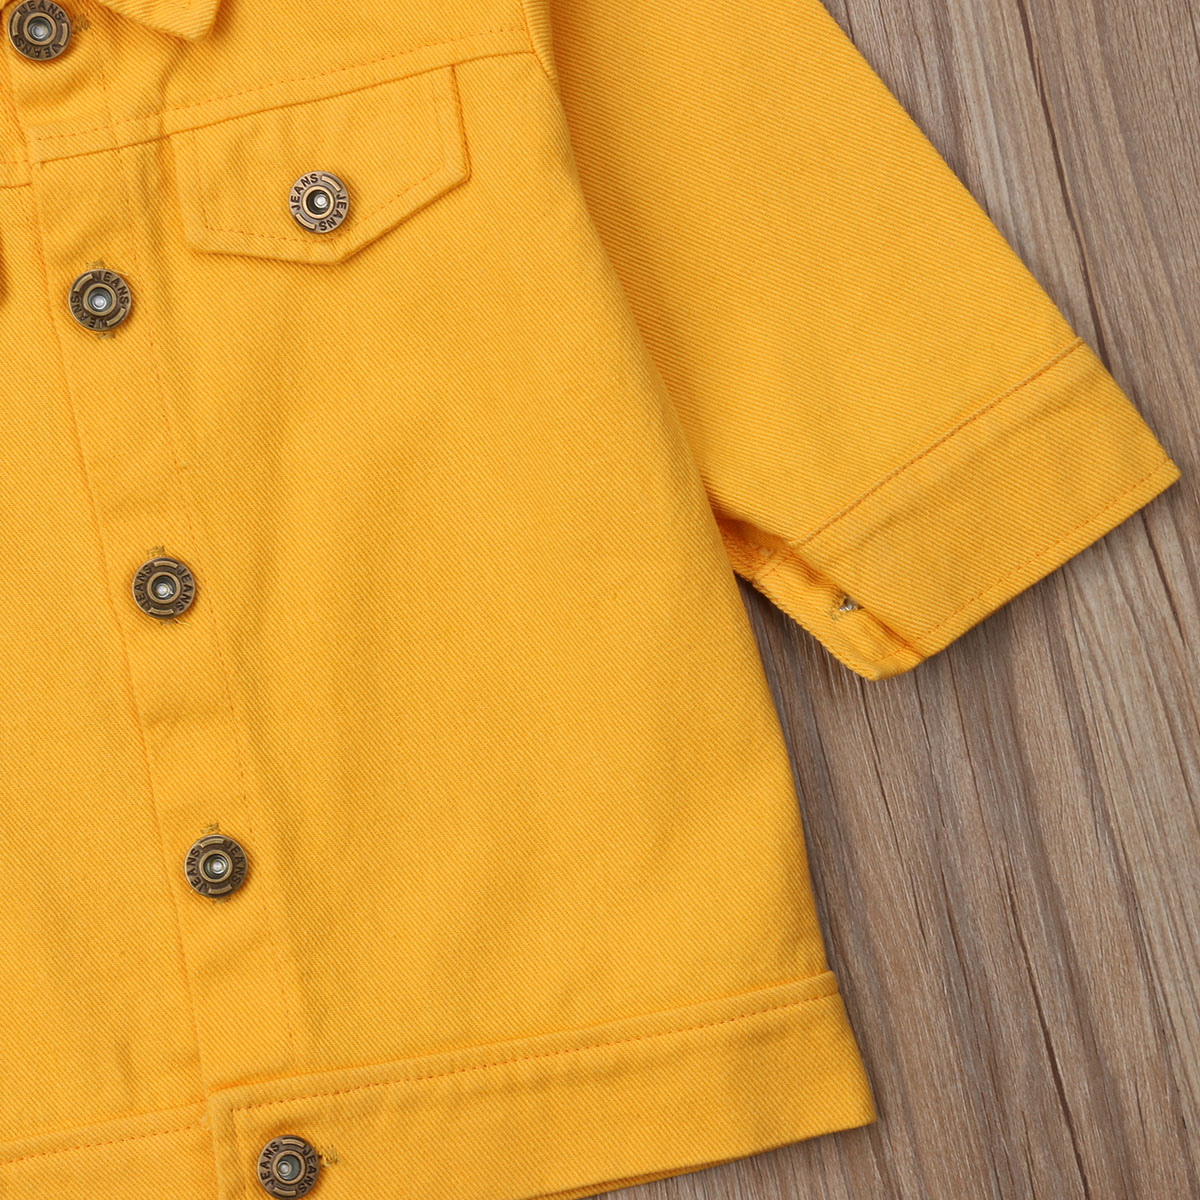 Kids Child Baby Boy Girl Clothing Yellow Denim Jacket Coat Snowsuit Top Outerwear